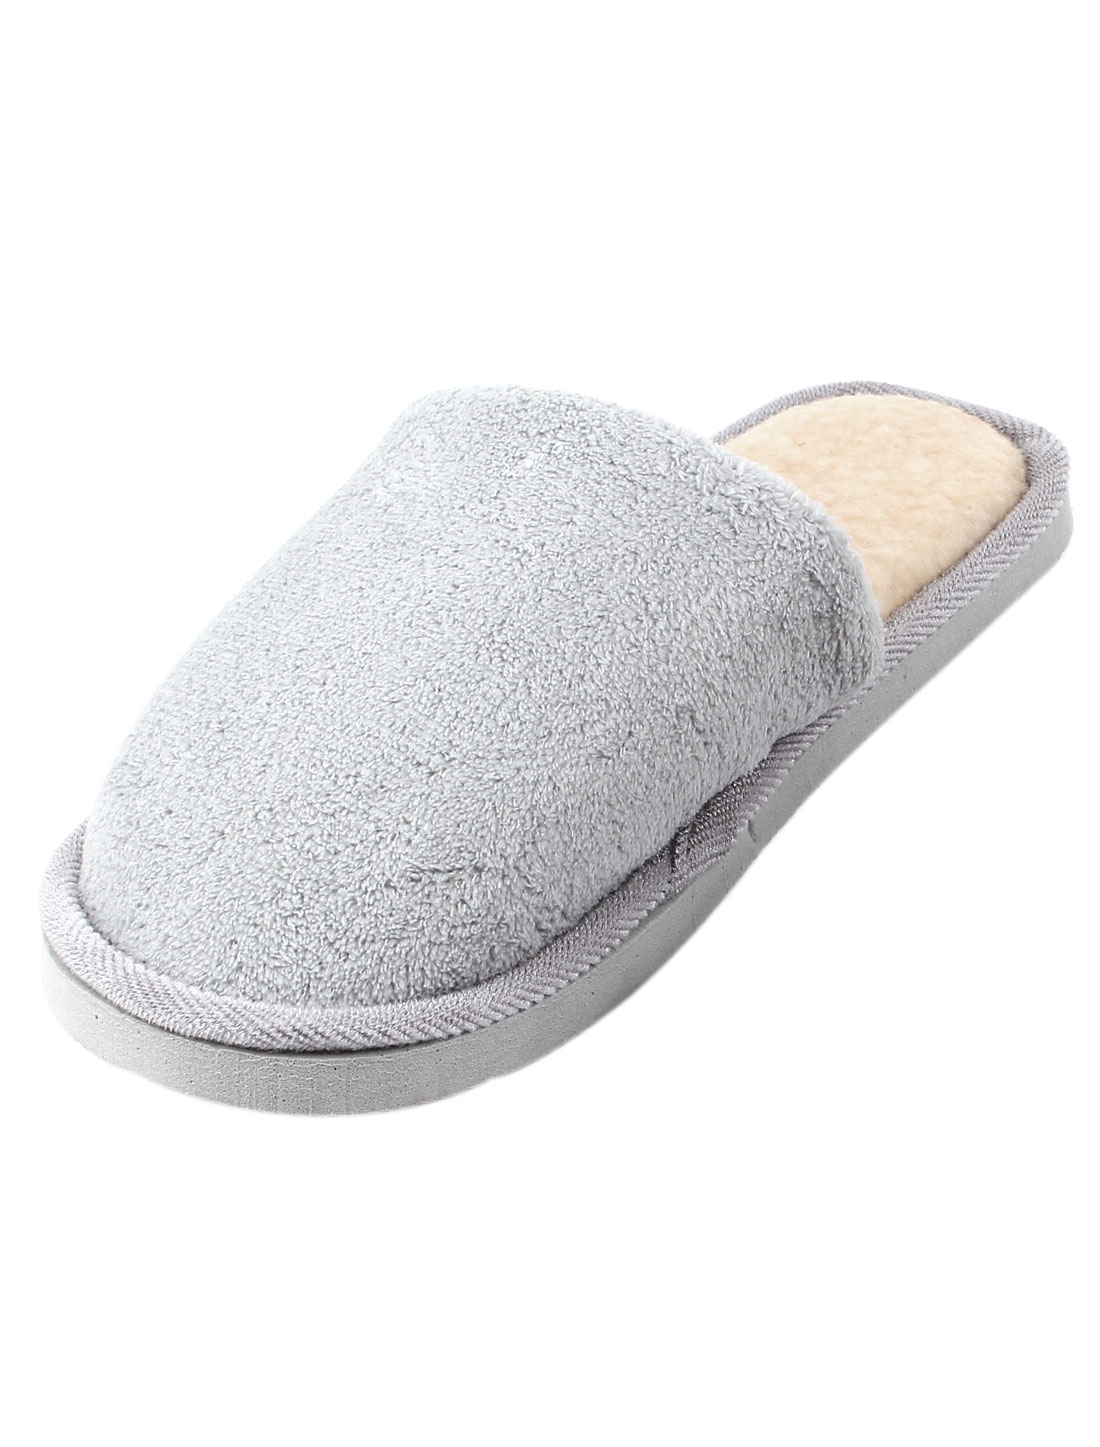 Man Nonslip Soles Gray Plush House Soft Winter Warm Slippers Flat Shoes EU 38